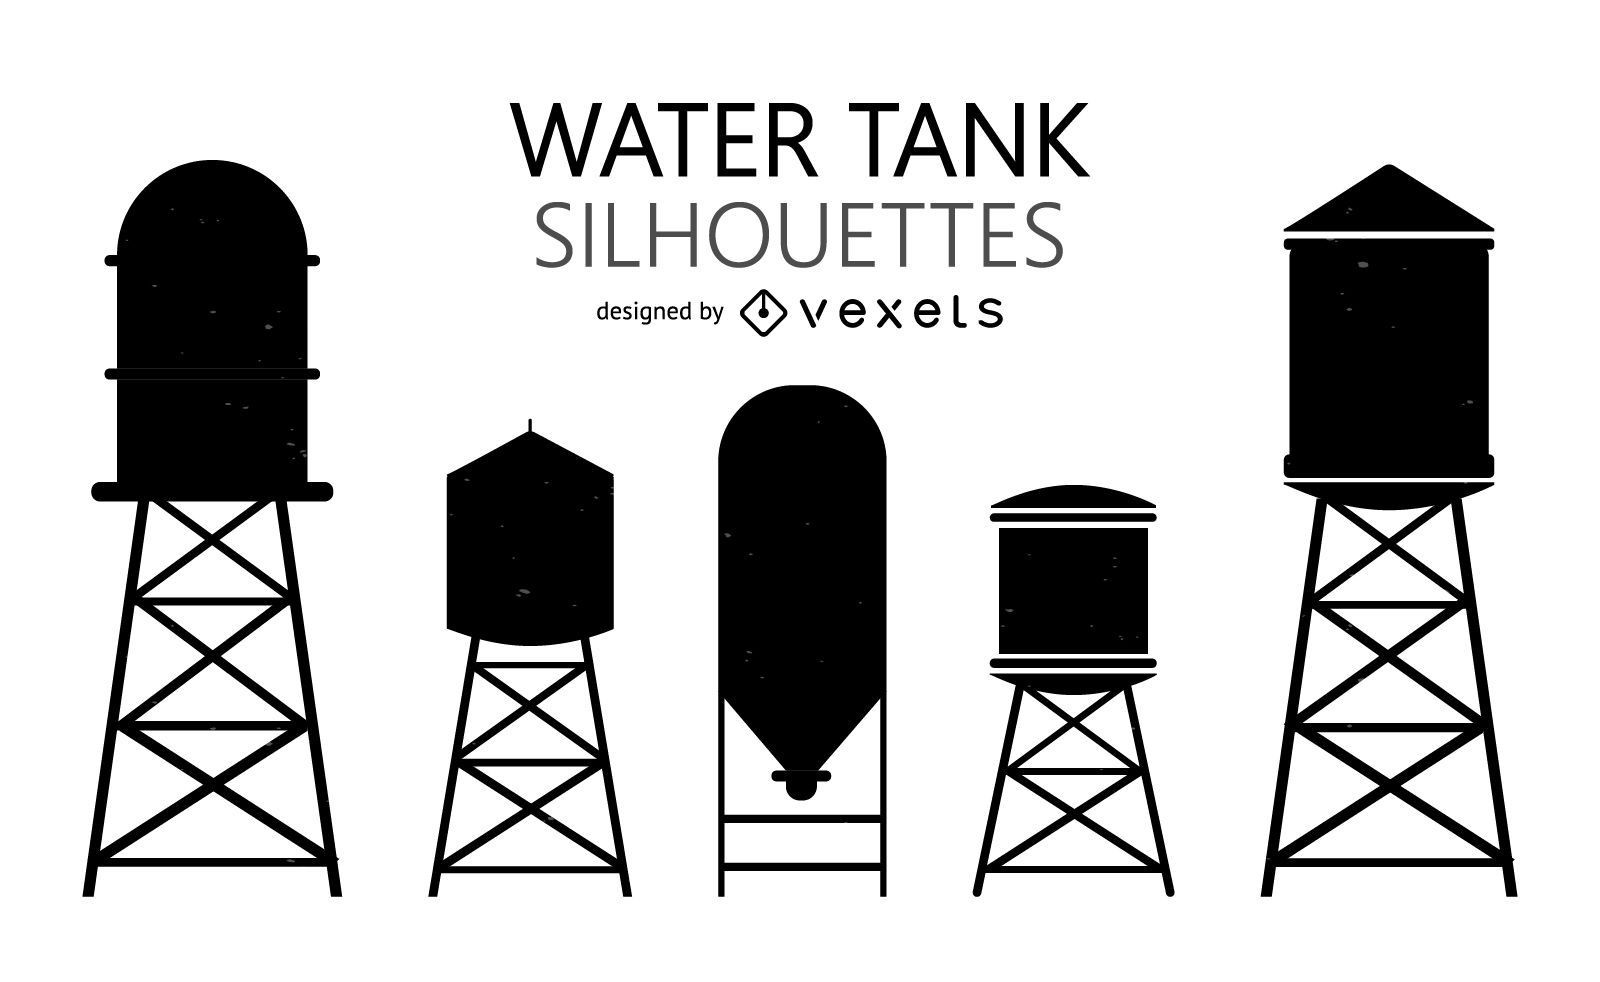 Silhouettes of water tanks